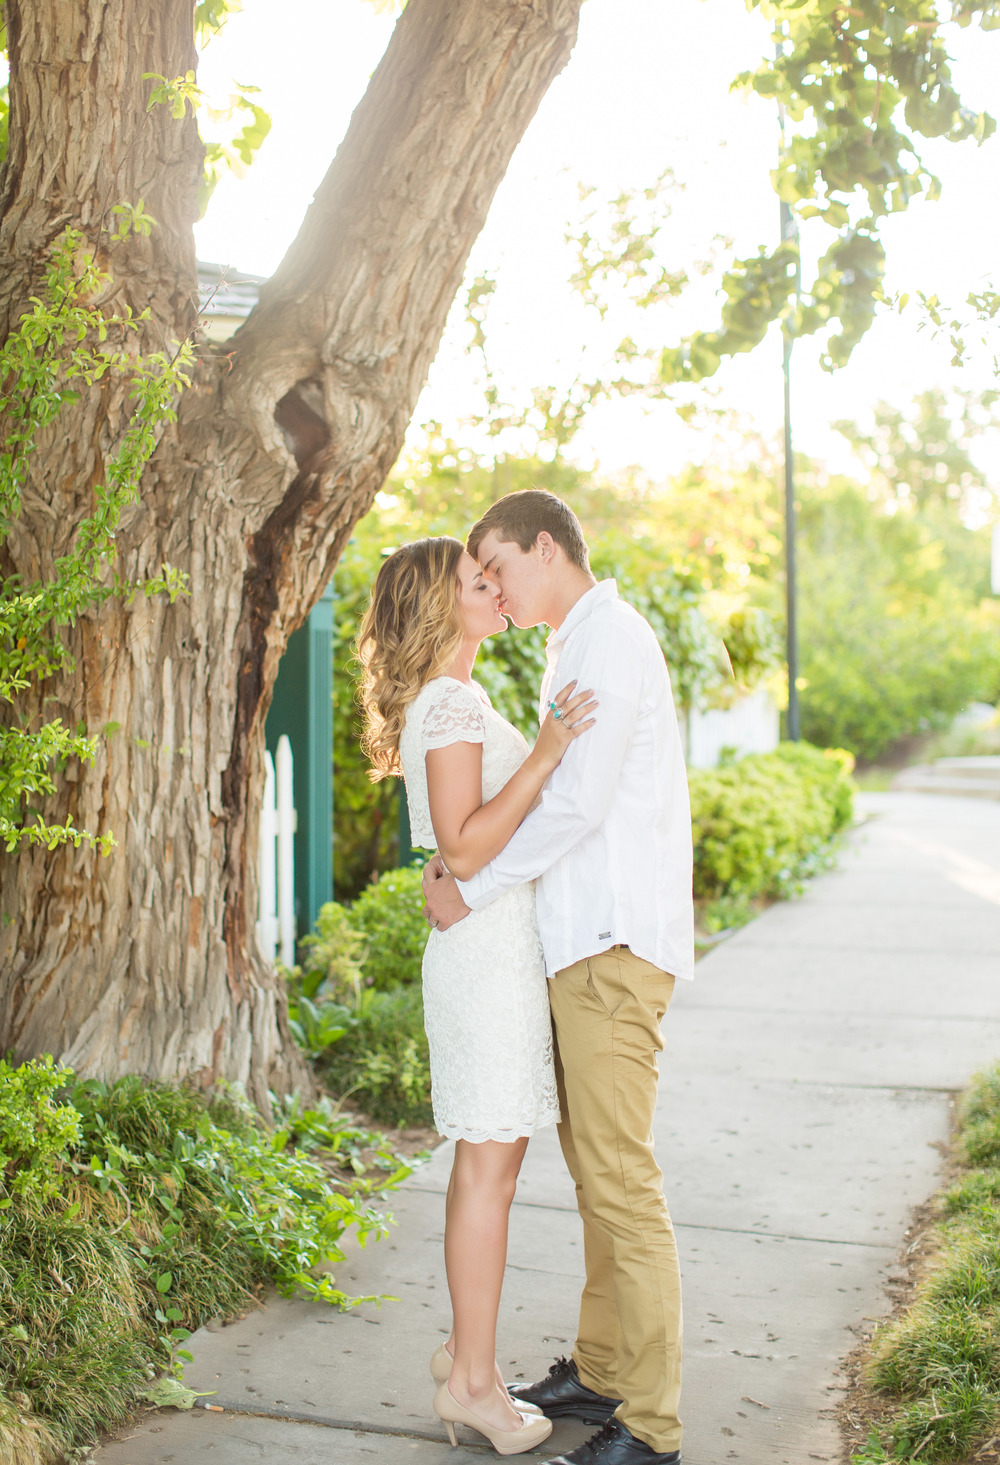 KendellBraydonEngagements2014 (35 of 62).jpg